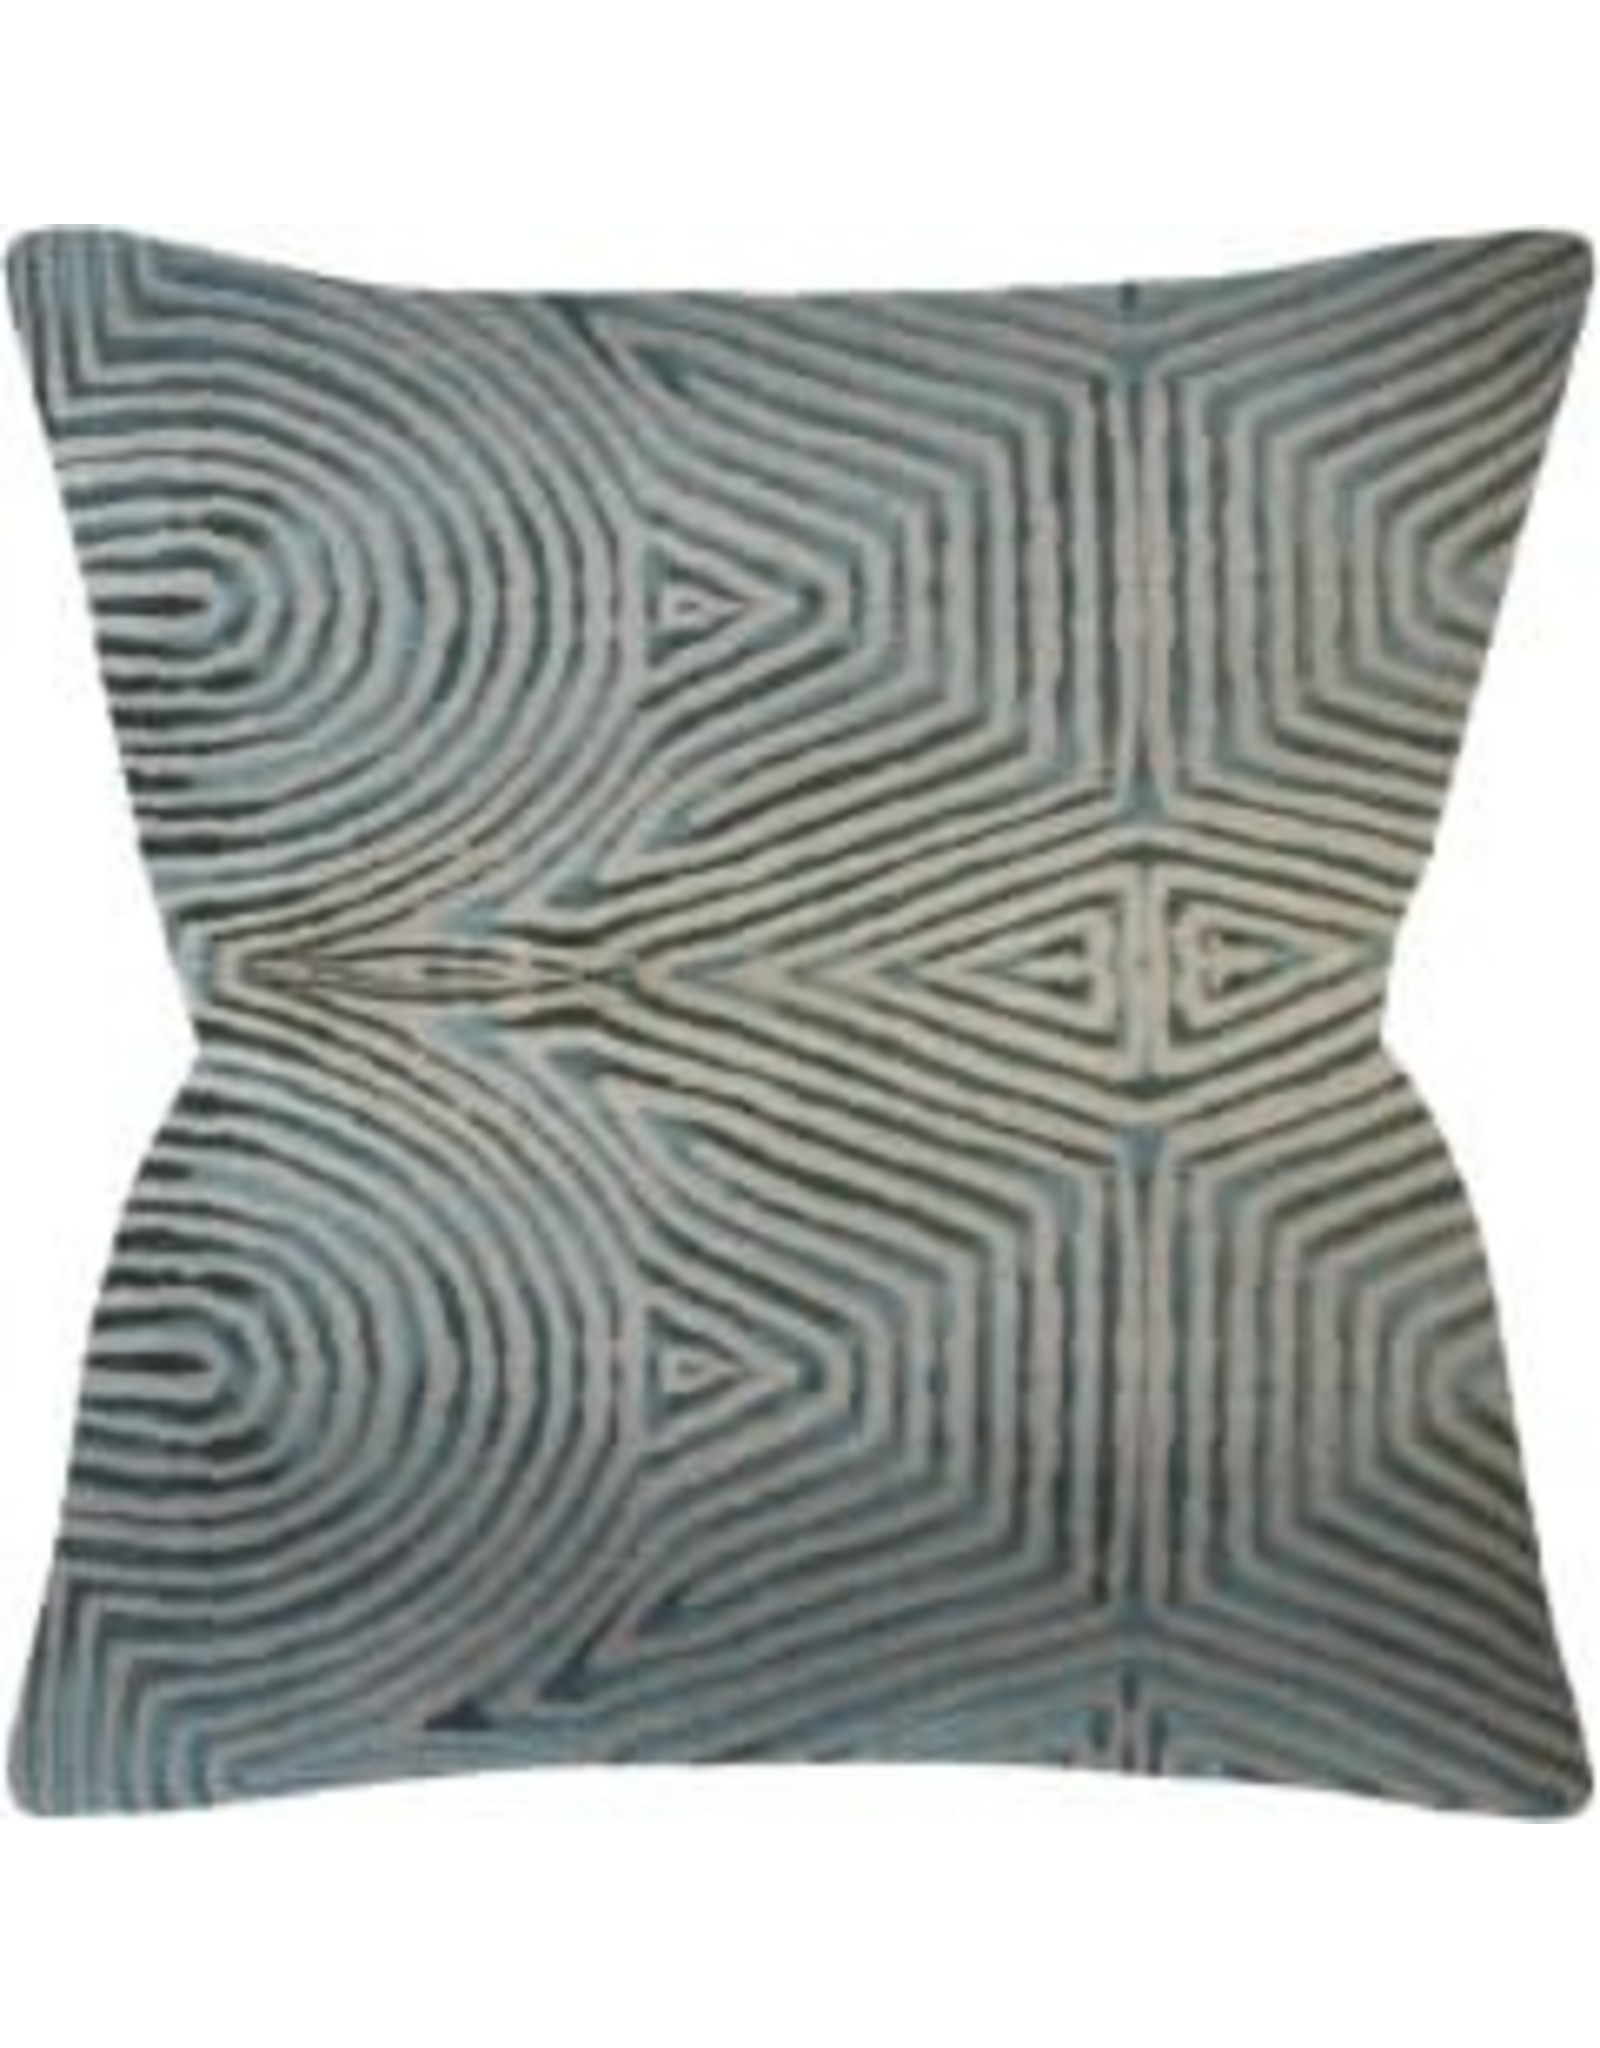 Pravam Flax/Jade Pillow 14x20""